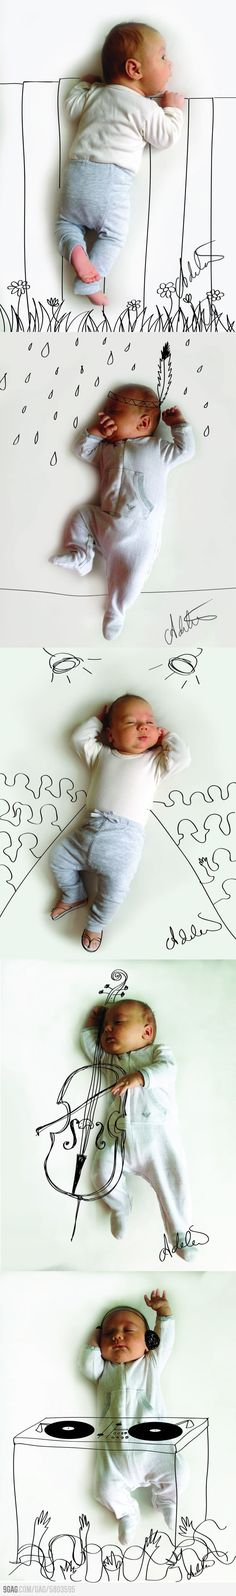 adorable baby portraits idea